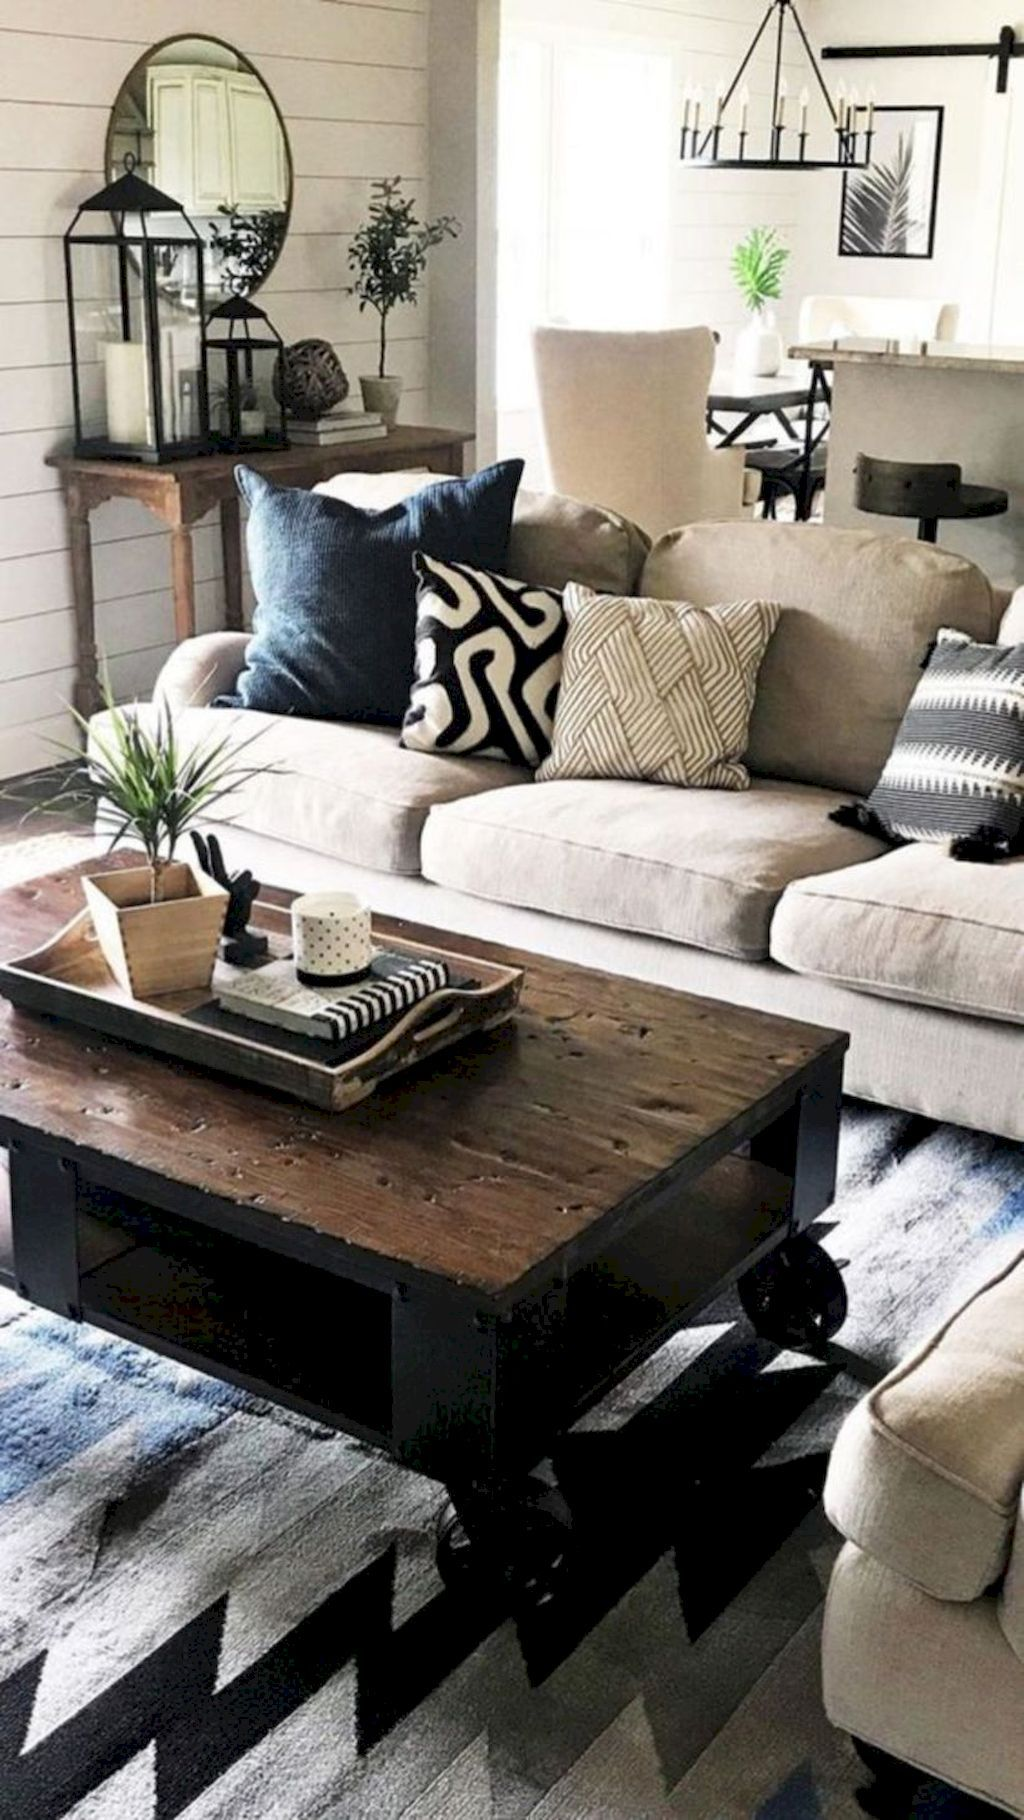 55 Marvelous Living Room Ideas with Modern Farmhouse Style images